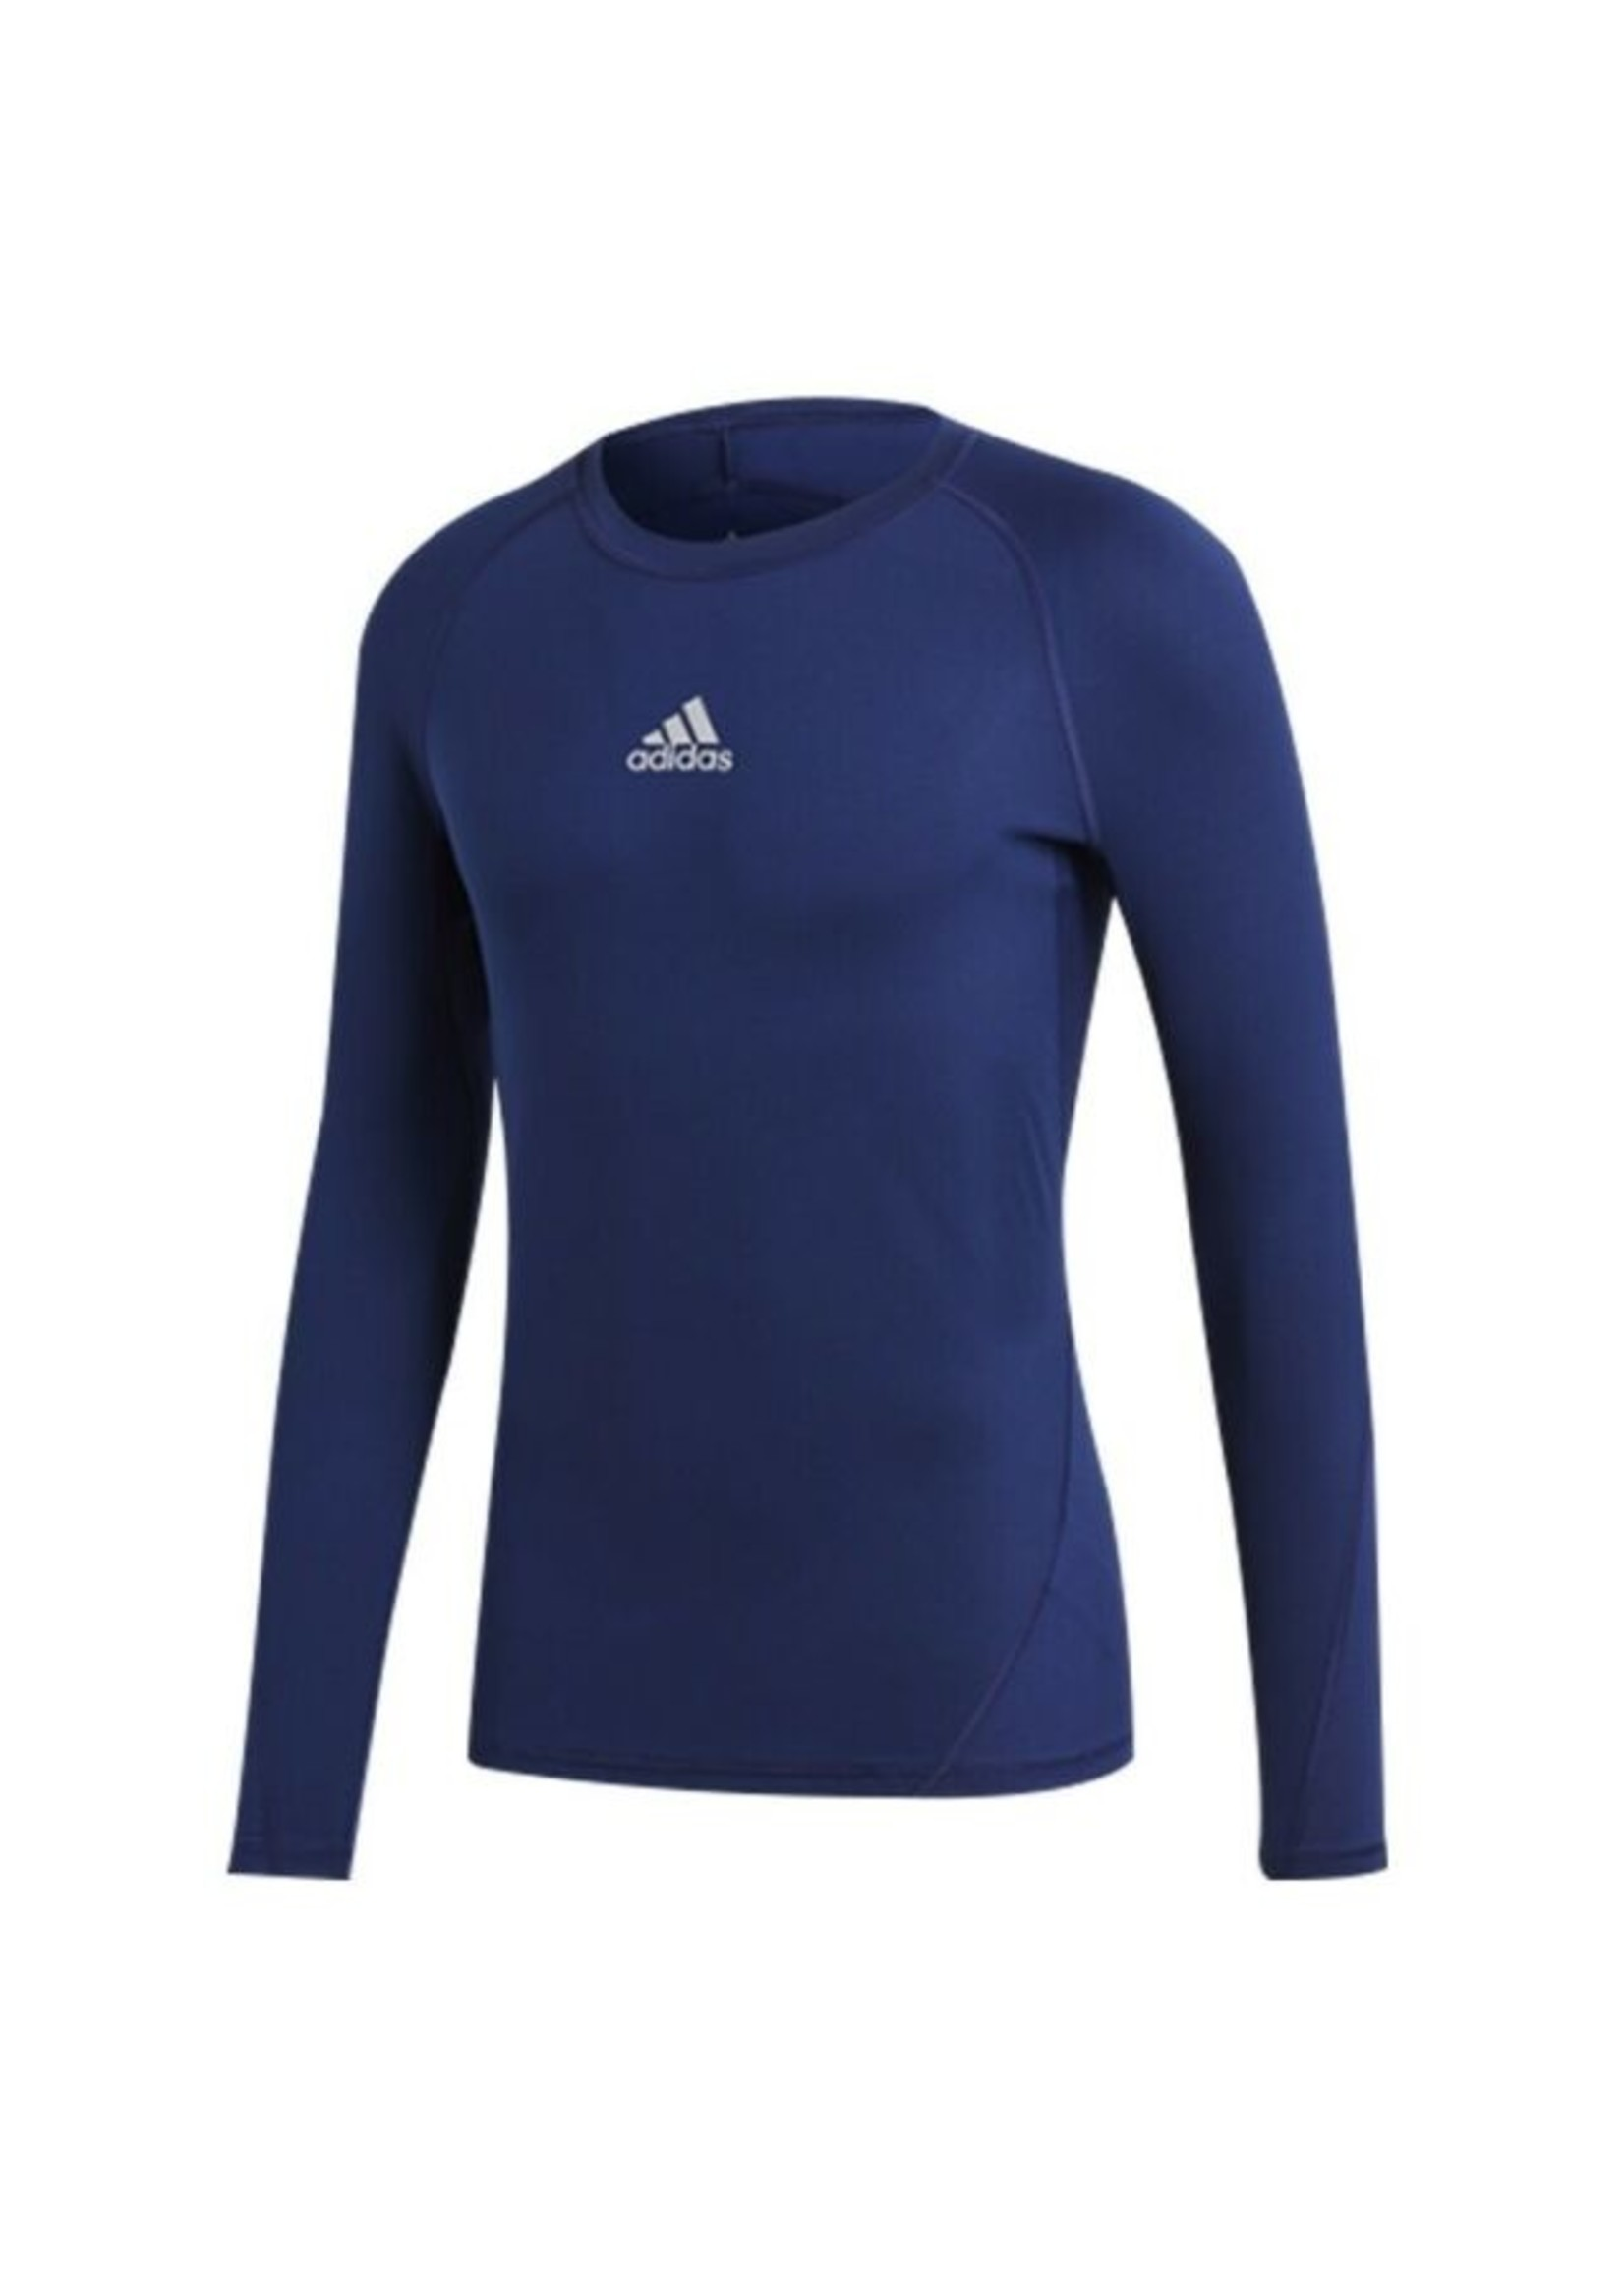 Adidas Compression Navy Long Sleeve Youth